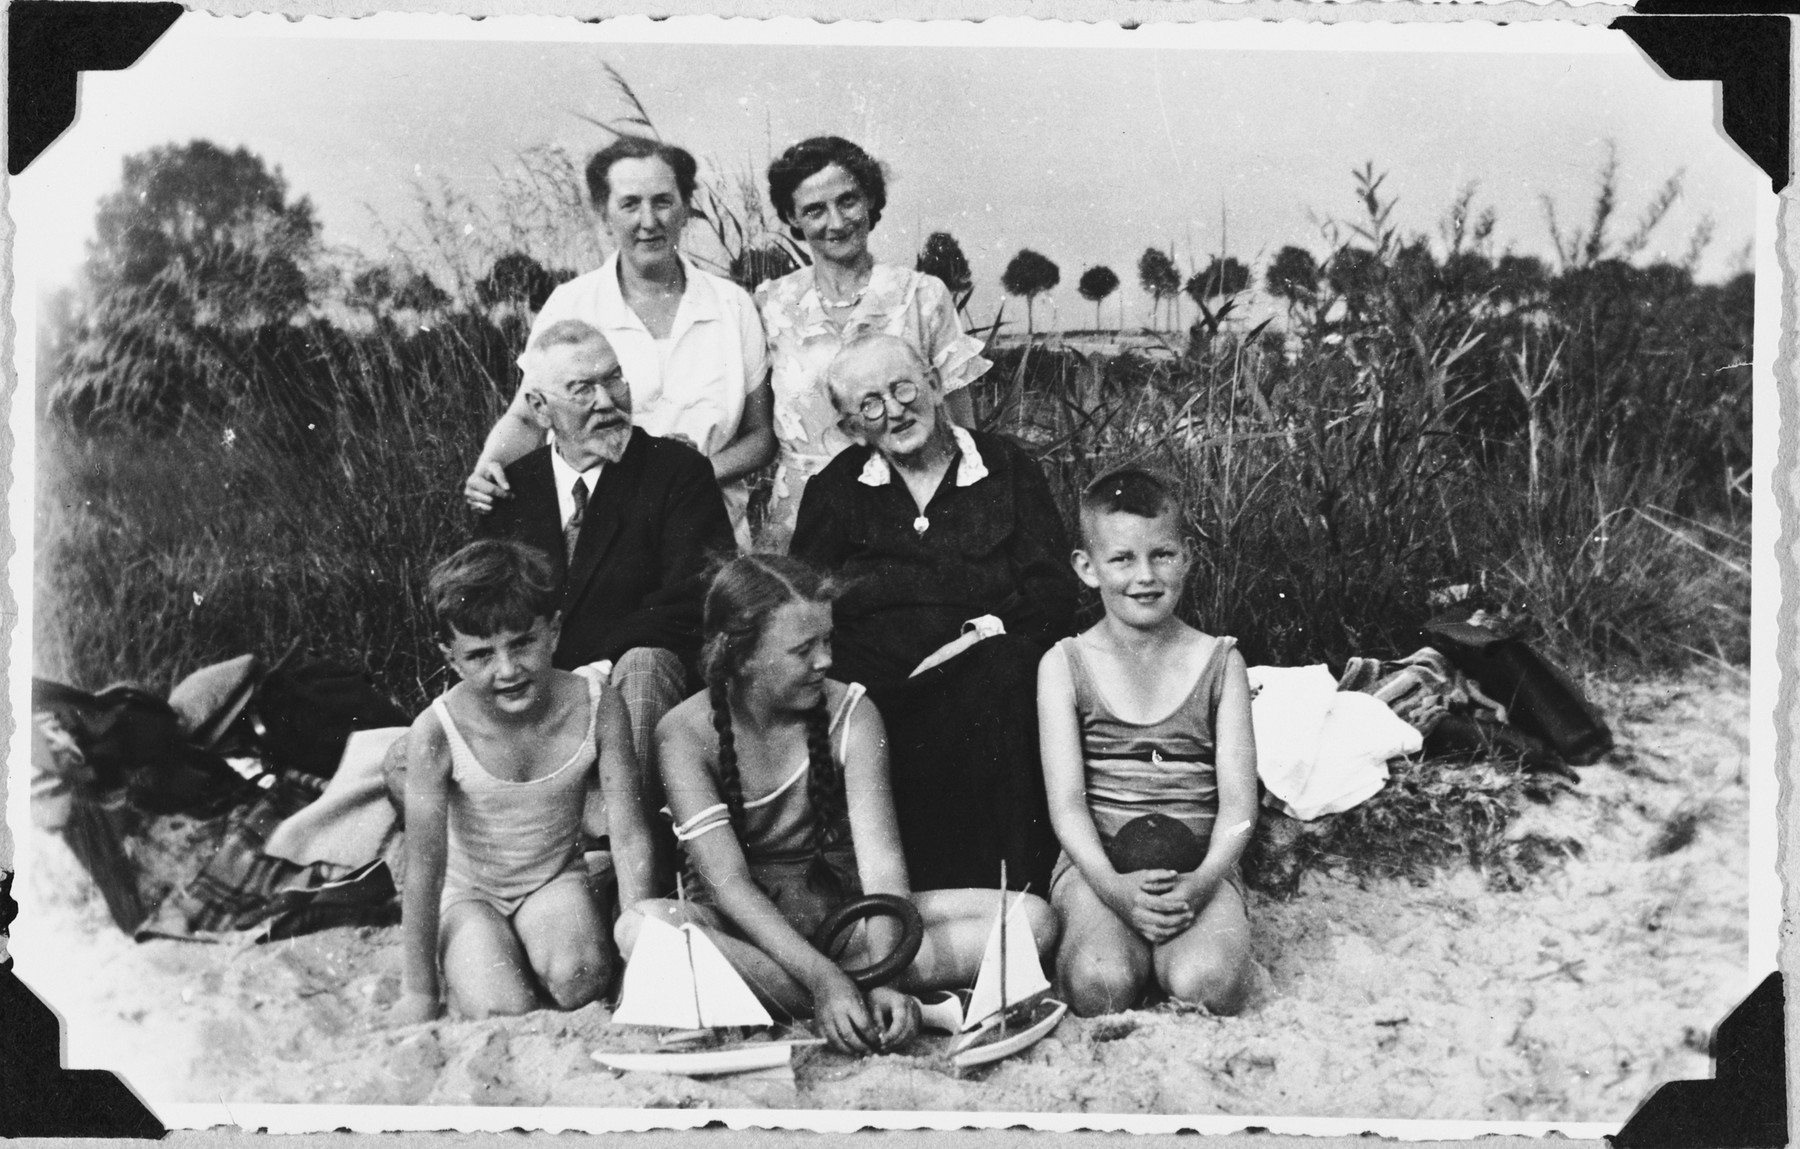 Fritz Glueckstein (bottom, left) poses on the beach with his Christian grandparents, aunt and cousins.